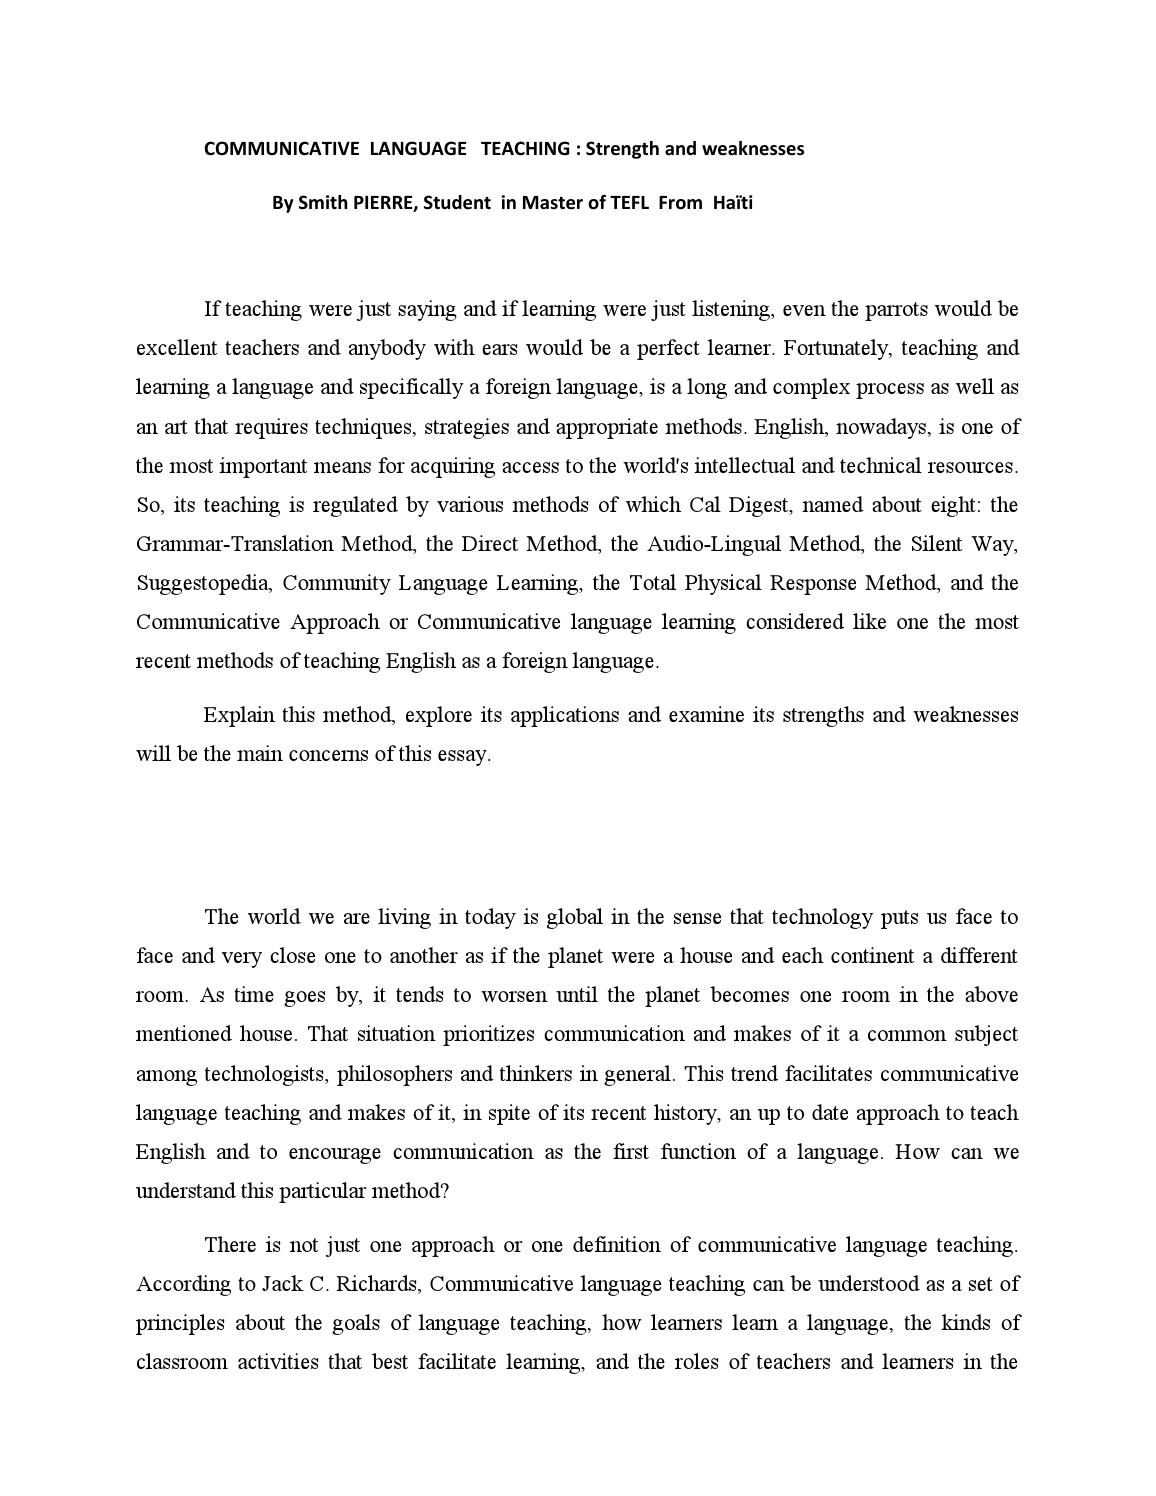 Essay On Arranged Marriage  James Joyce Essays also Science And Society Essay Communicative Language Teachingessay By Smith Pierre  Issuu Spare The Rod And Spoil The Child Essay